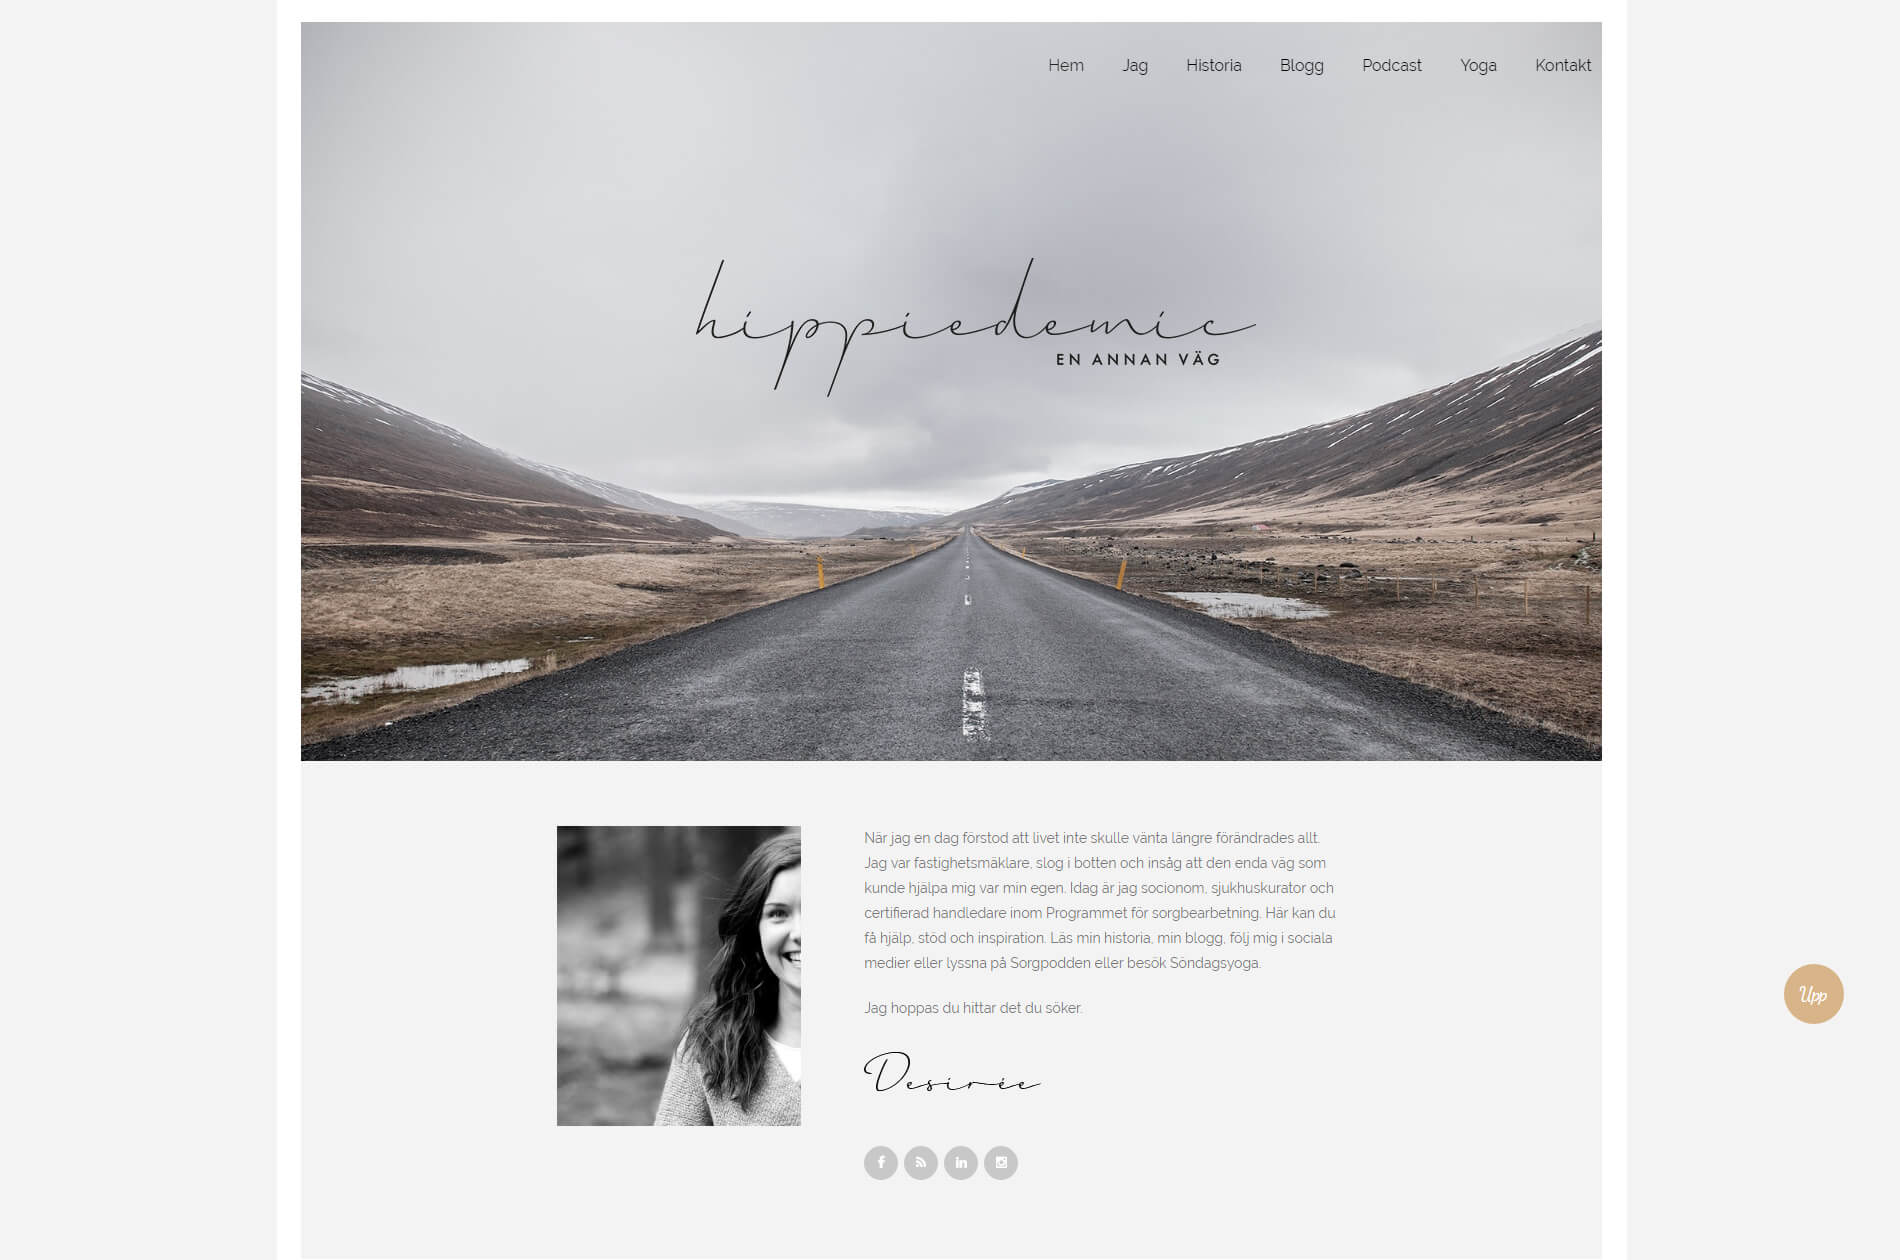 Web design anweb Hippiedemic Sorg podcast Blogg Yoga